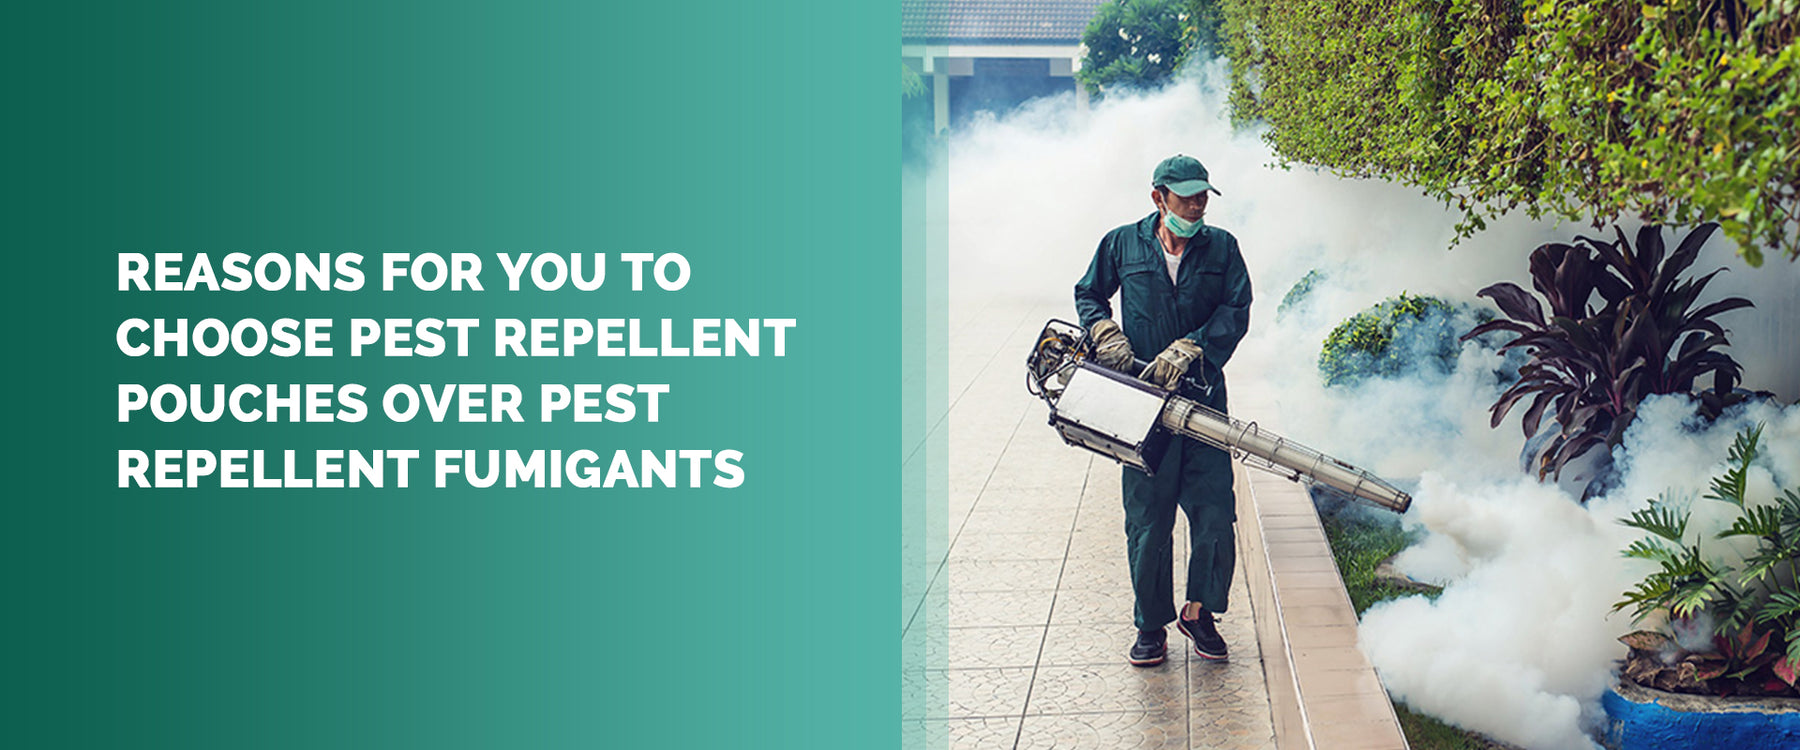 Reasons For You To  Choose Pest Repellent Pouches Over Pest Repellent Fumigants